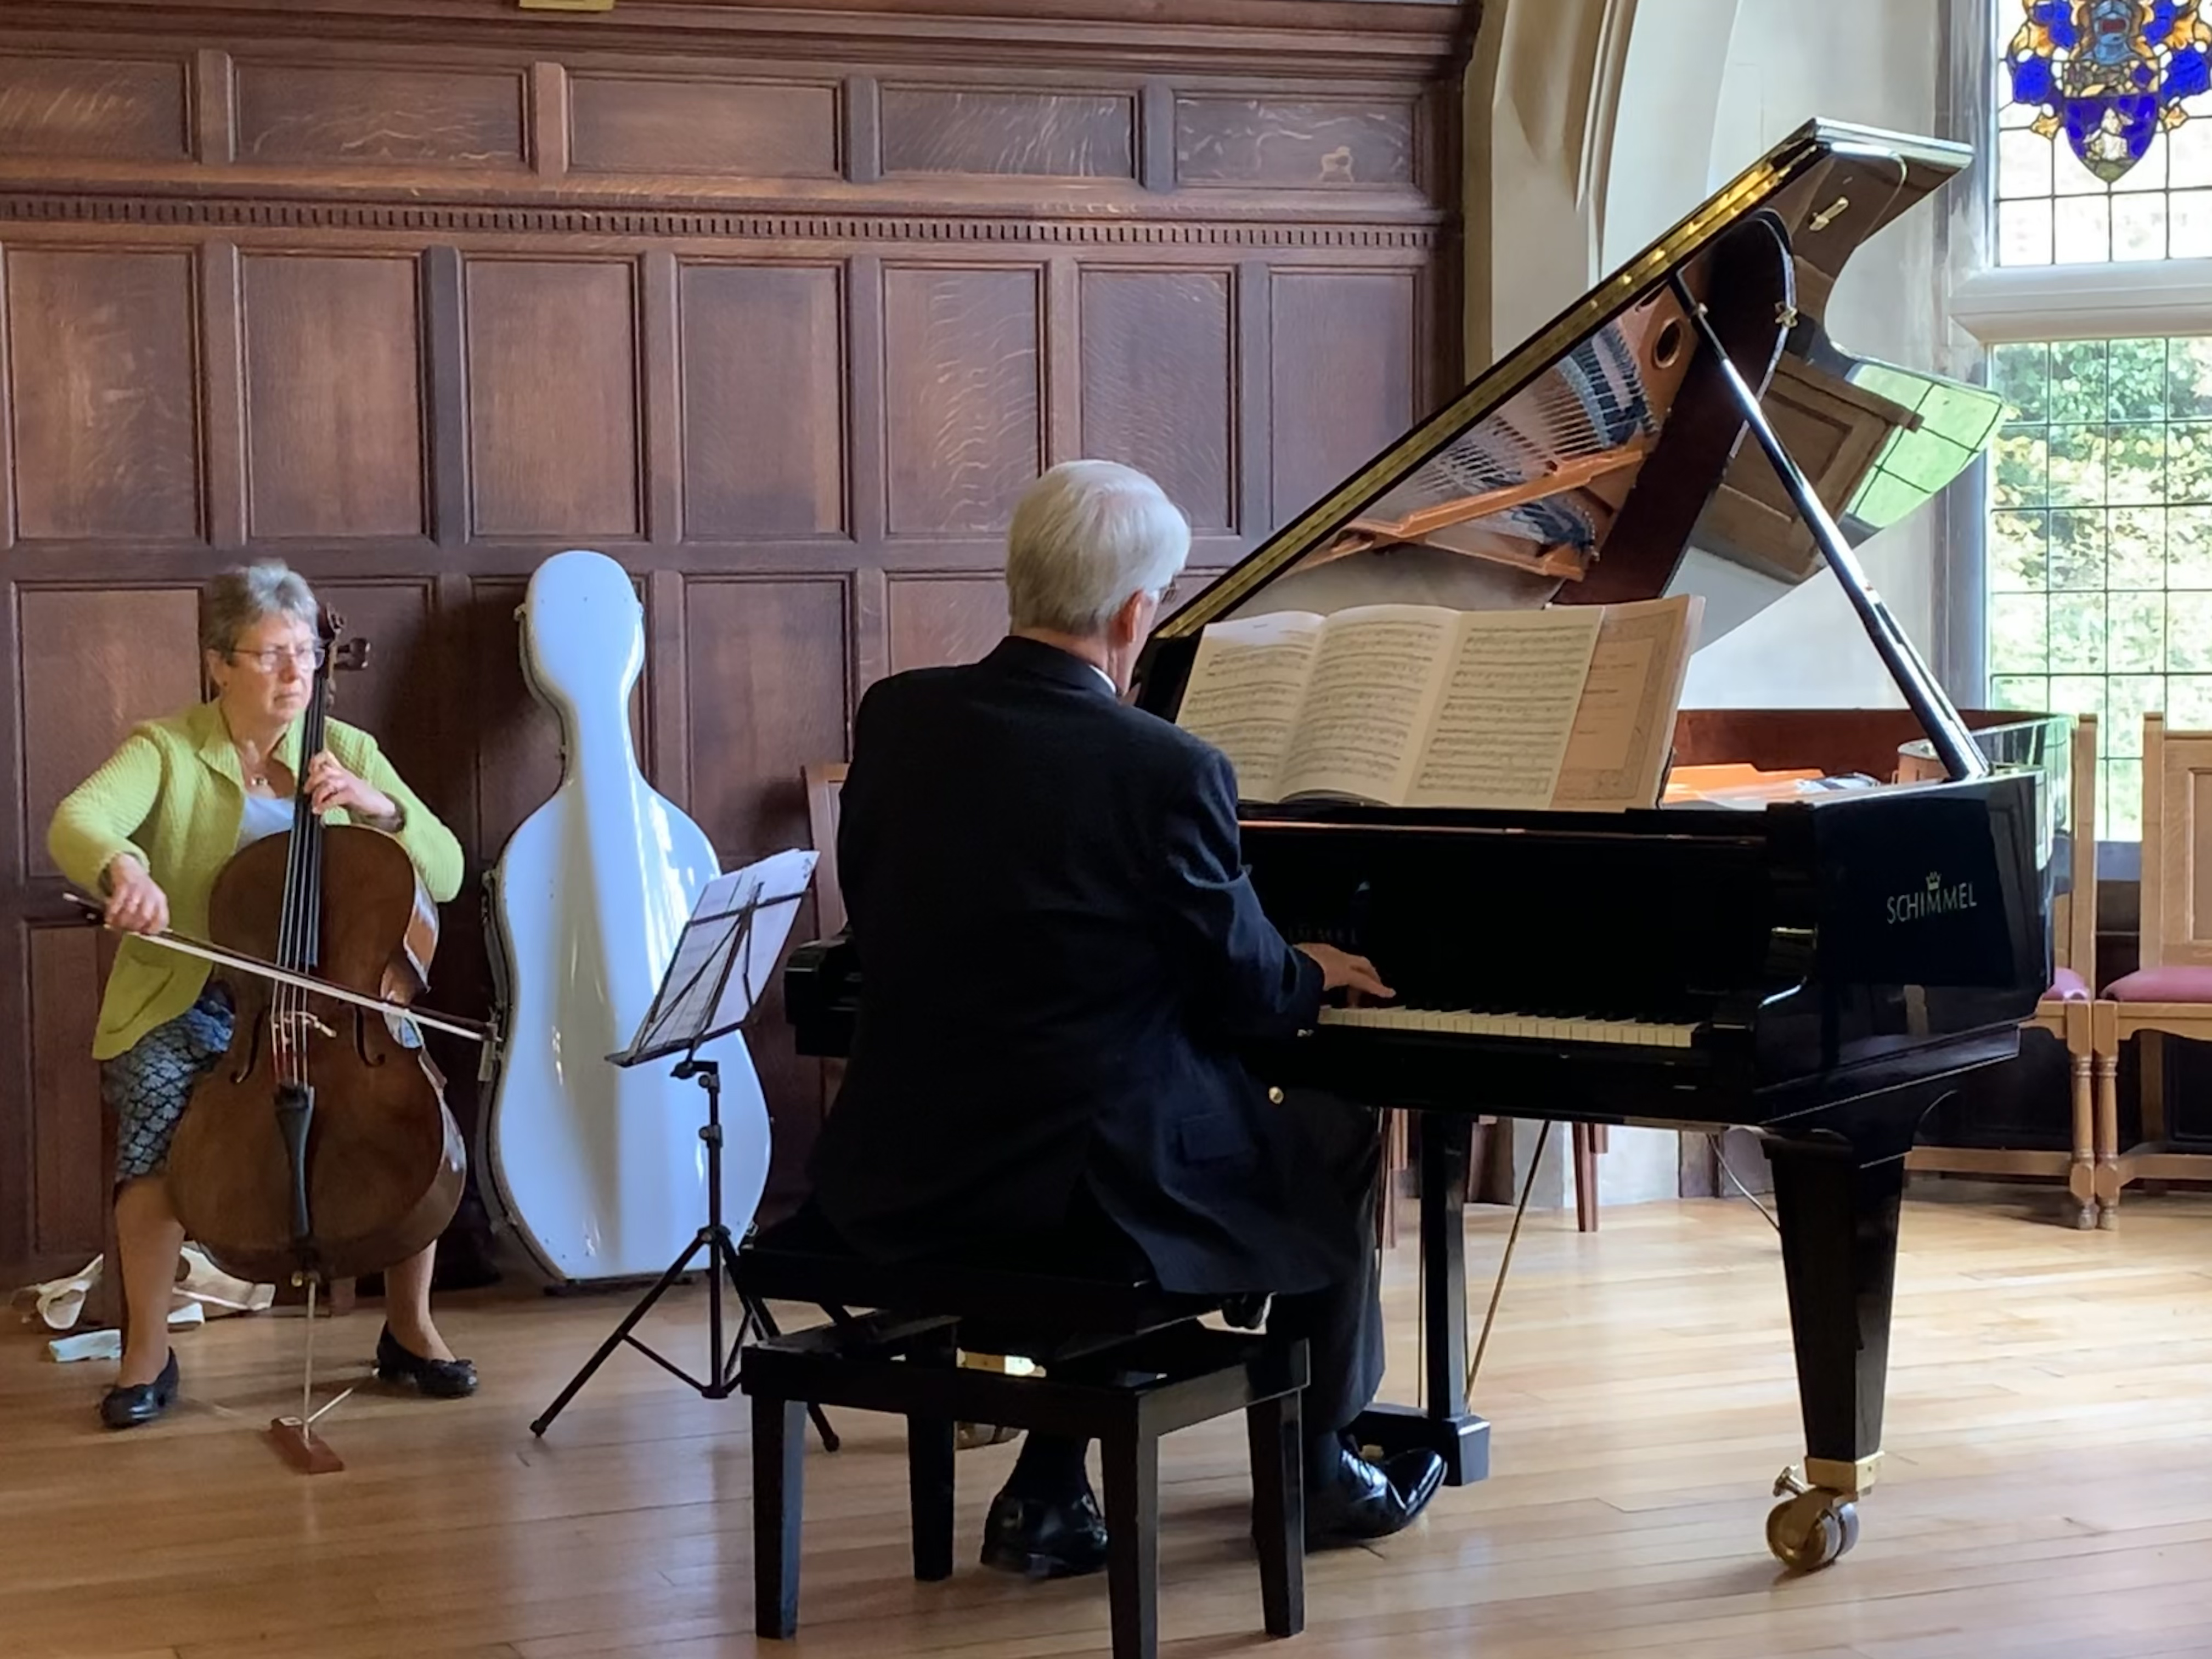 Music on 'cello and piano